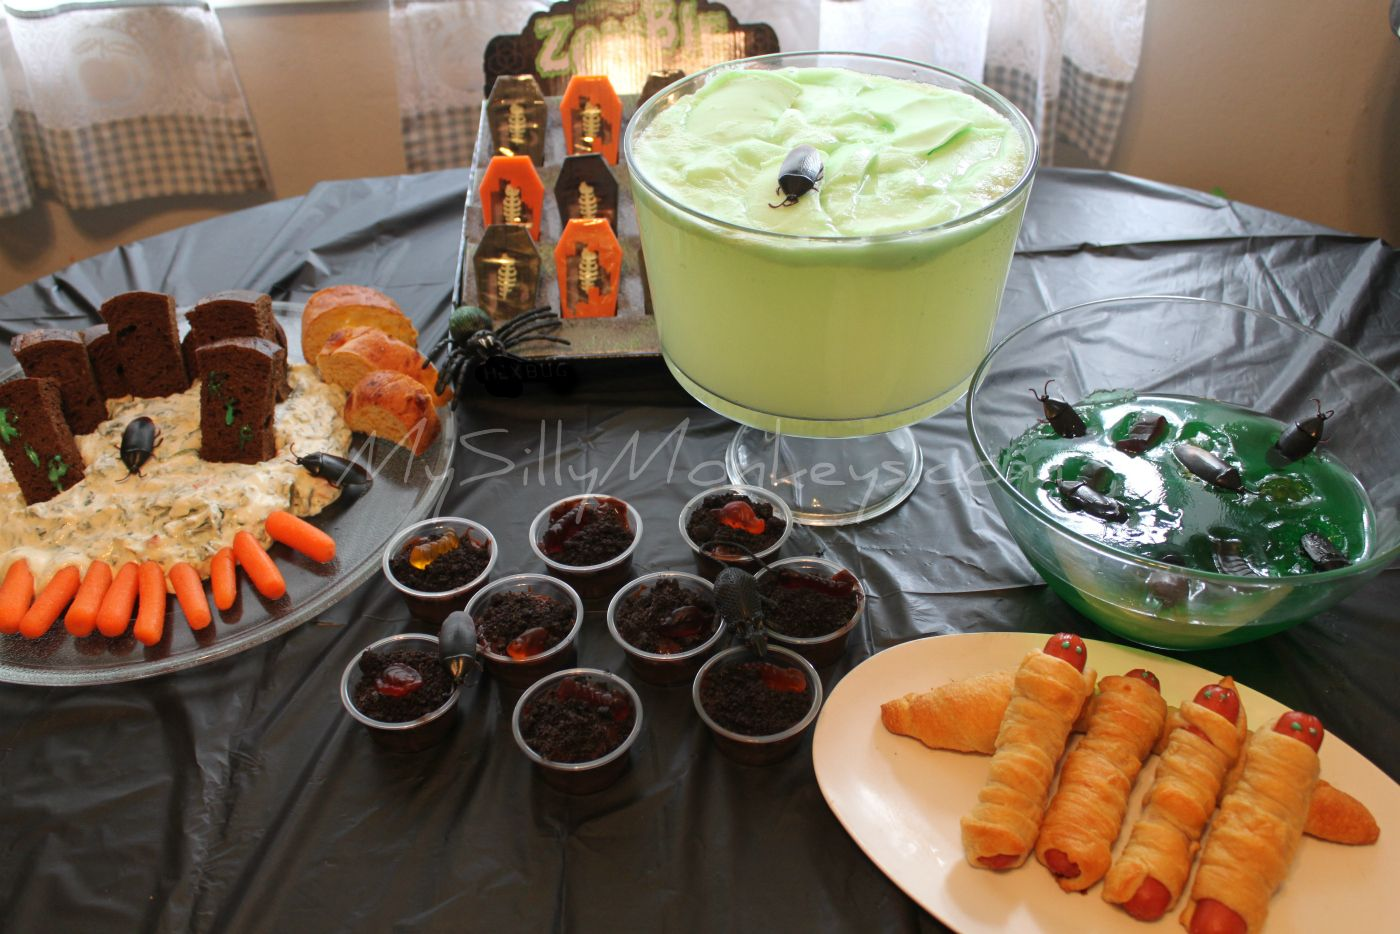 Whether it's designing the perfect costume, turning your home into a haunted mansion, or creating creepy and terrifying treats for your guests, Halloween gives us a chance to get our creative brain goo flowing. Here are 20 awesome Halloween food ideas for revolting-yet .